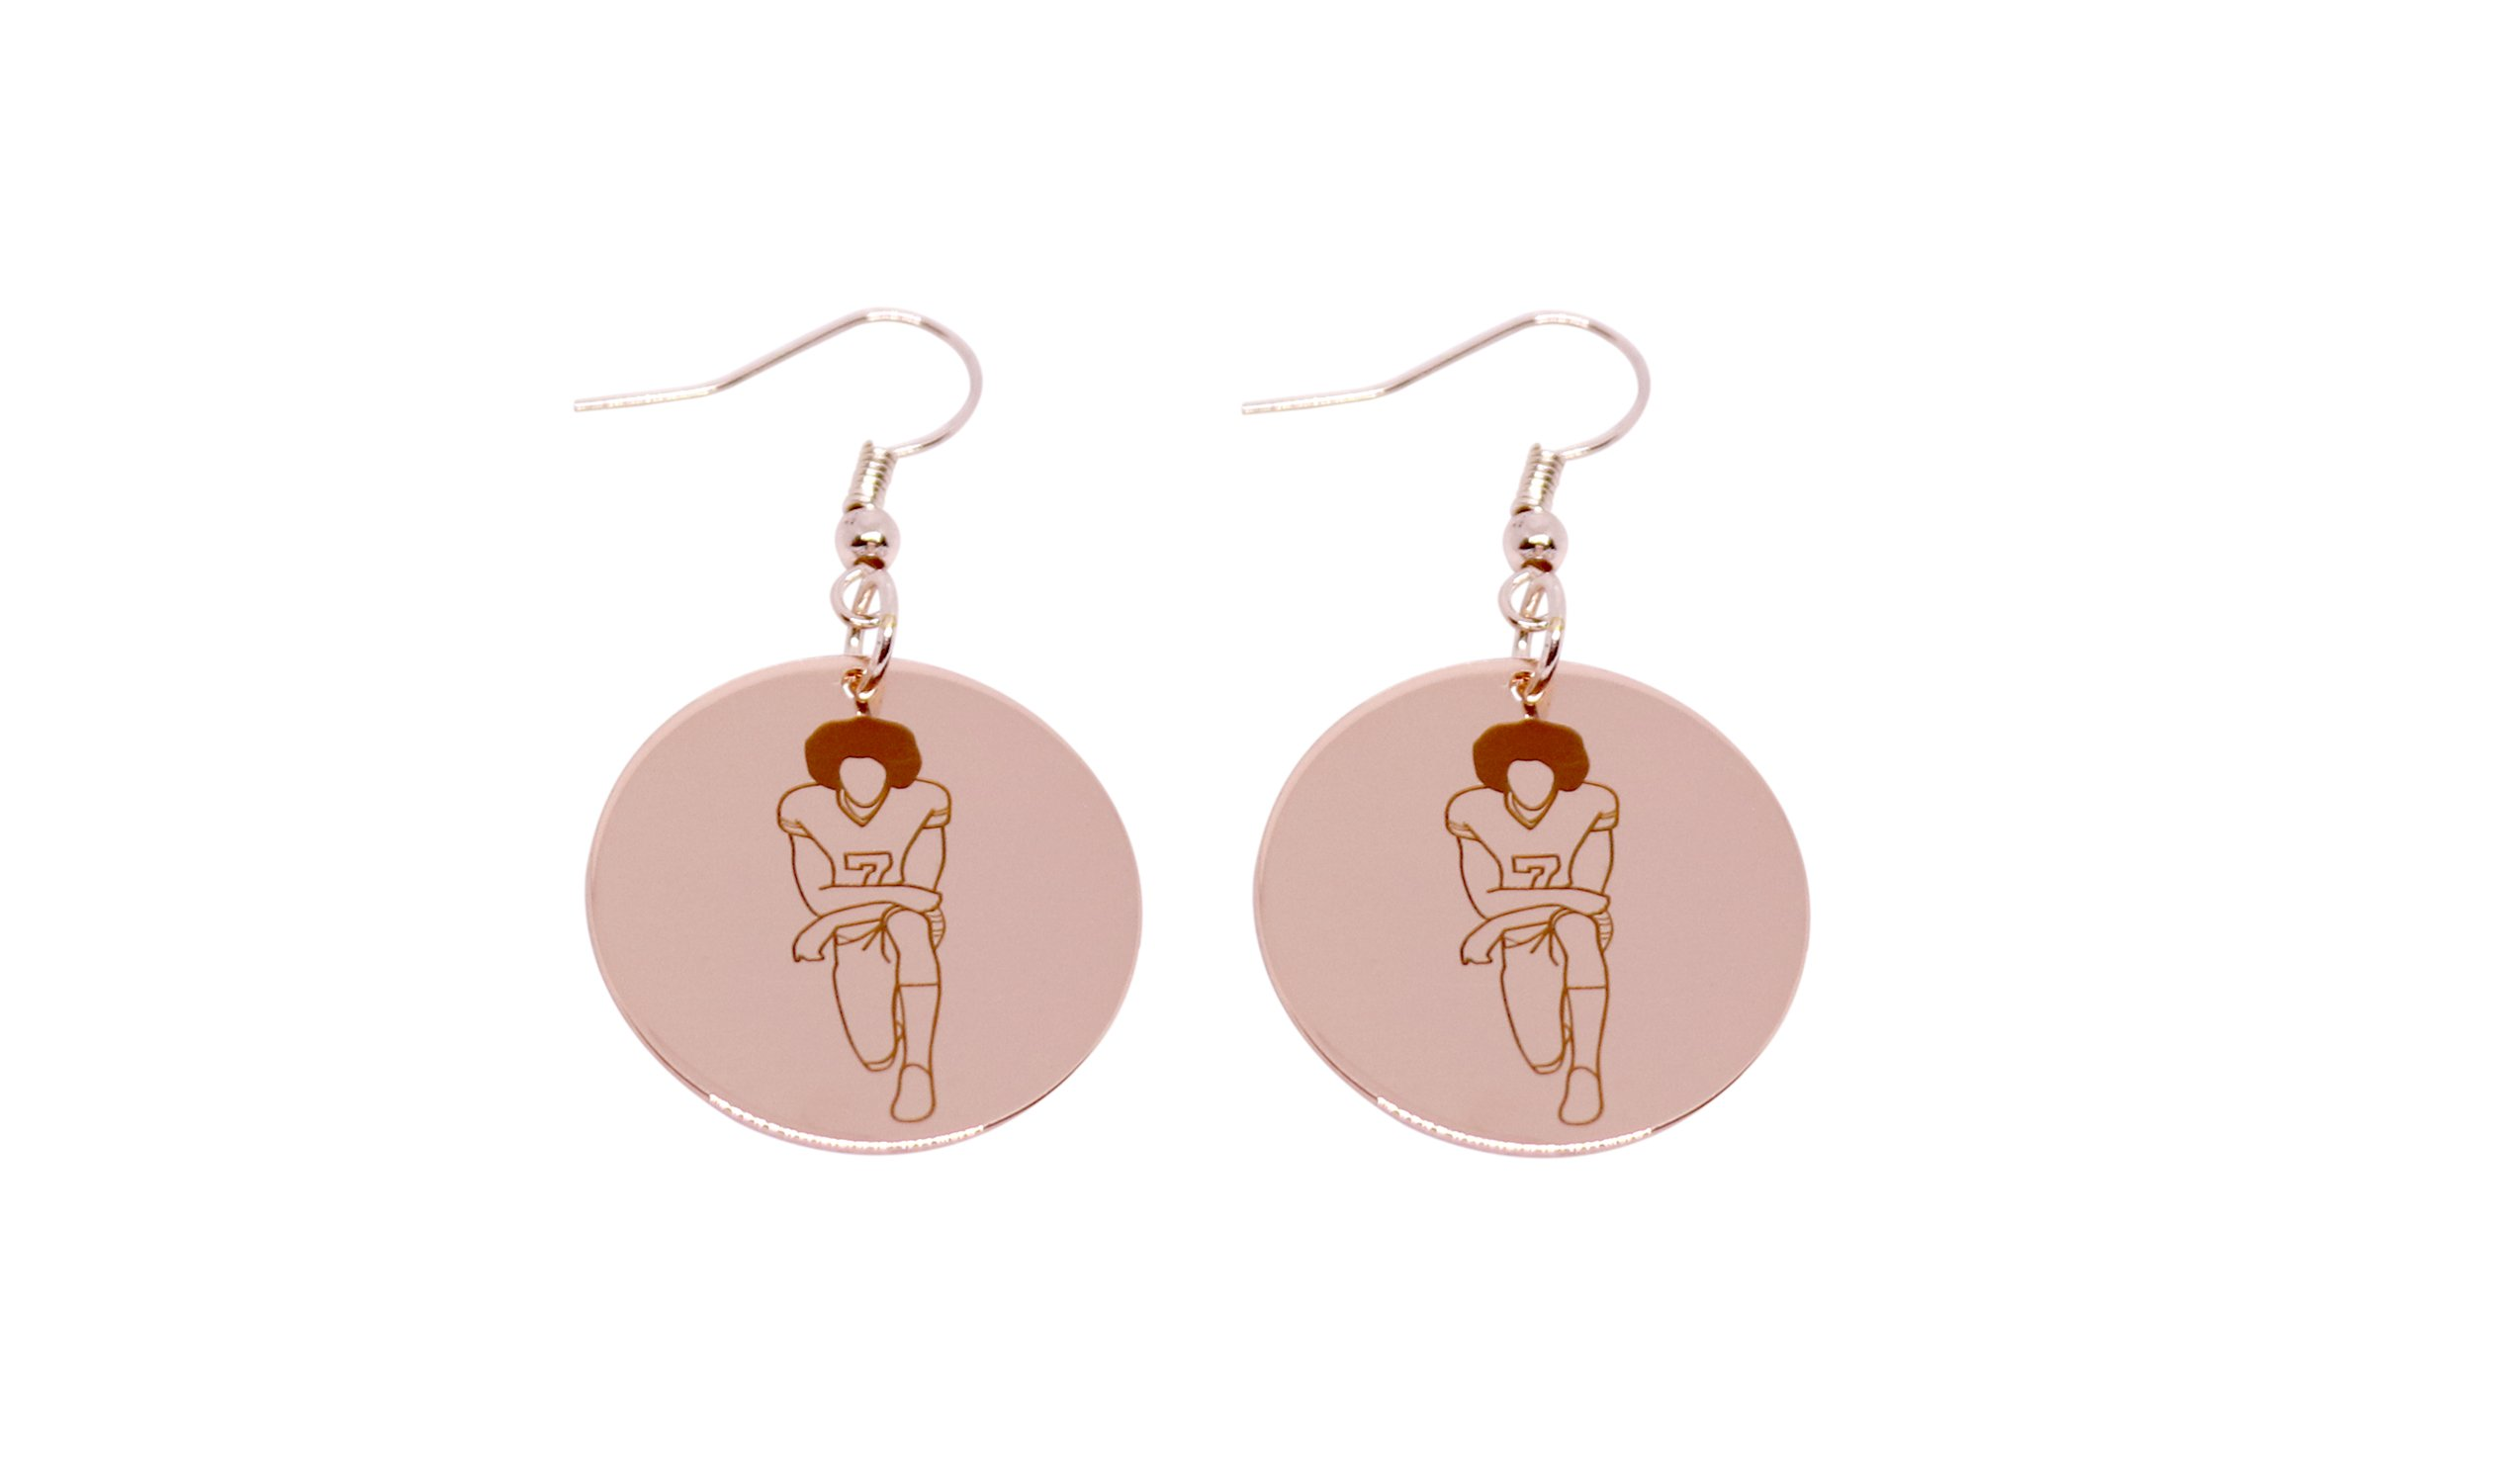 Colin Kaepernick Earrings Stainless Steel Supports the Advancement Project NFL Protest (Rose Gold Dipped, Stainless Steel)